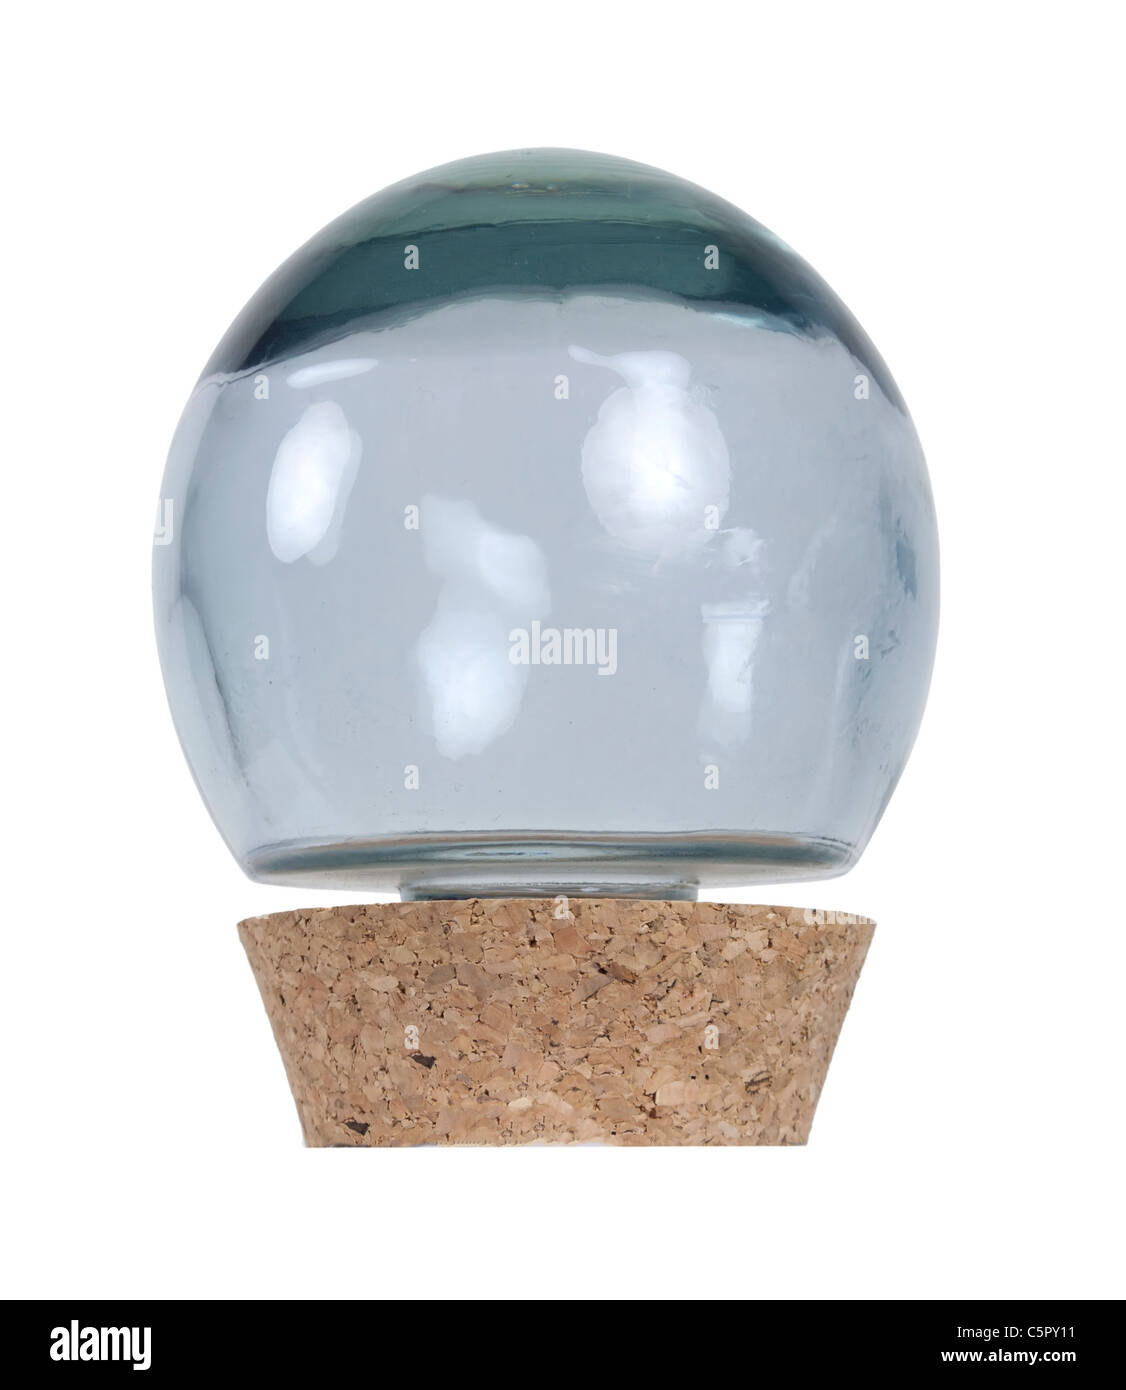 Glass orb ball container with large cork stopper - path included - Stock Image